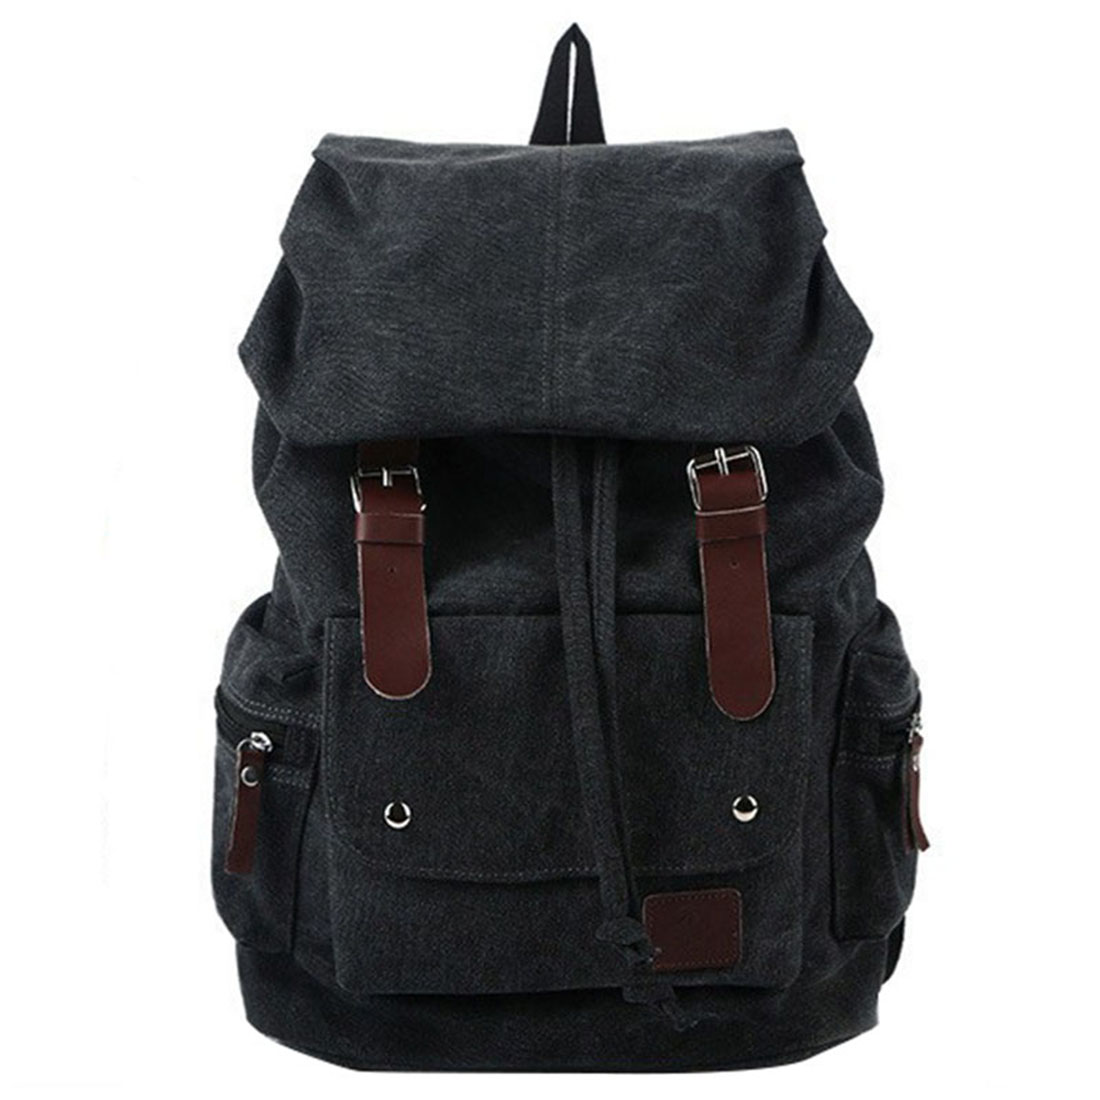 Backpack Vintage Canvas Shoulder Bag Backpack School Bag Travel Bag